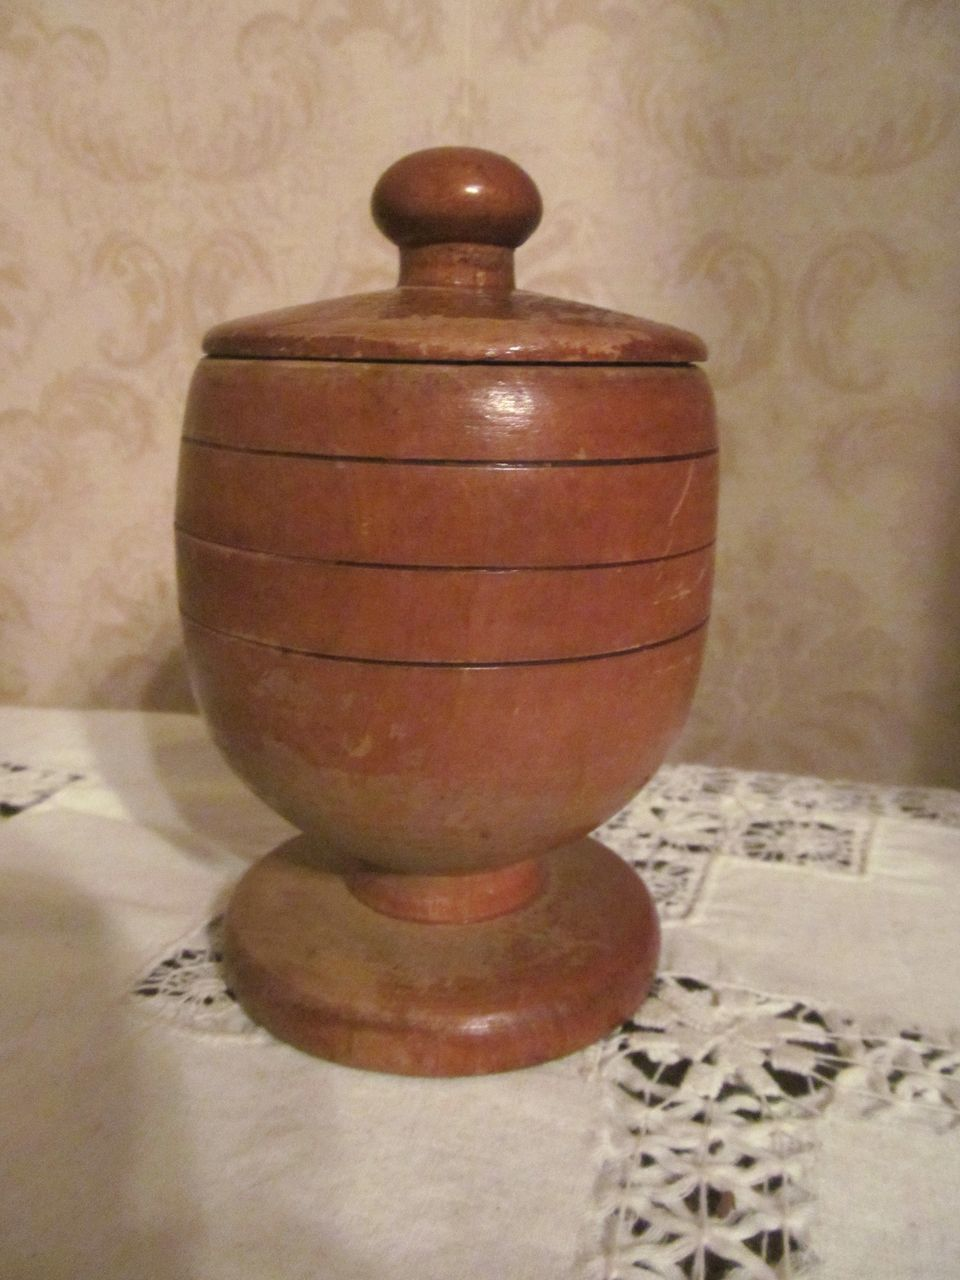 Wood Turned Covered Jar, Incised Bands, Dated 1946